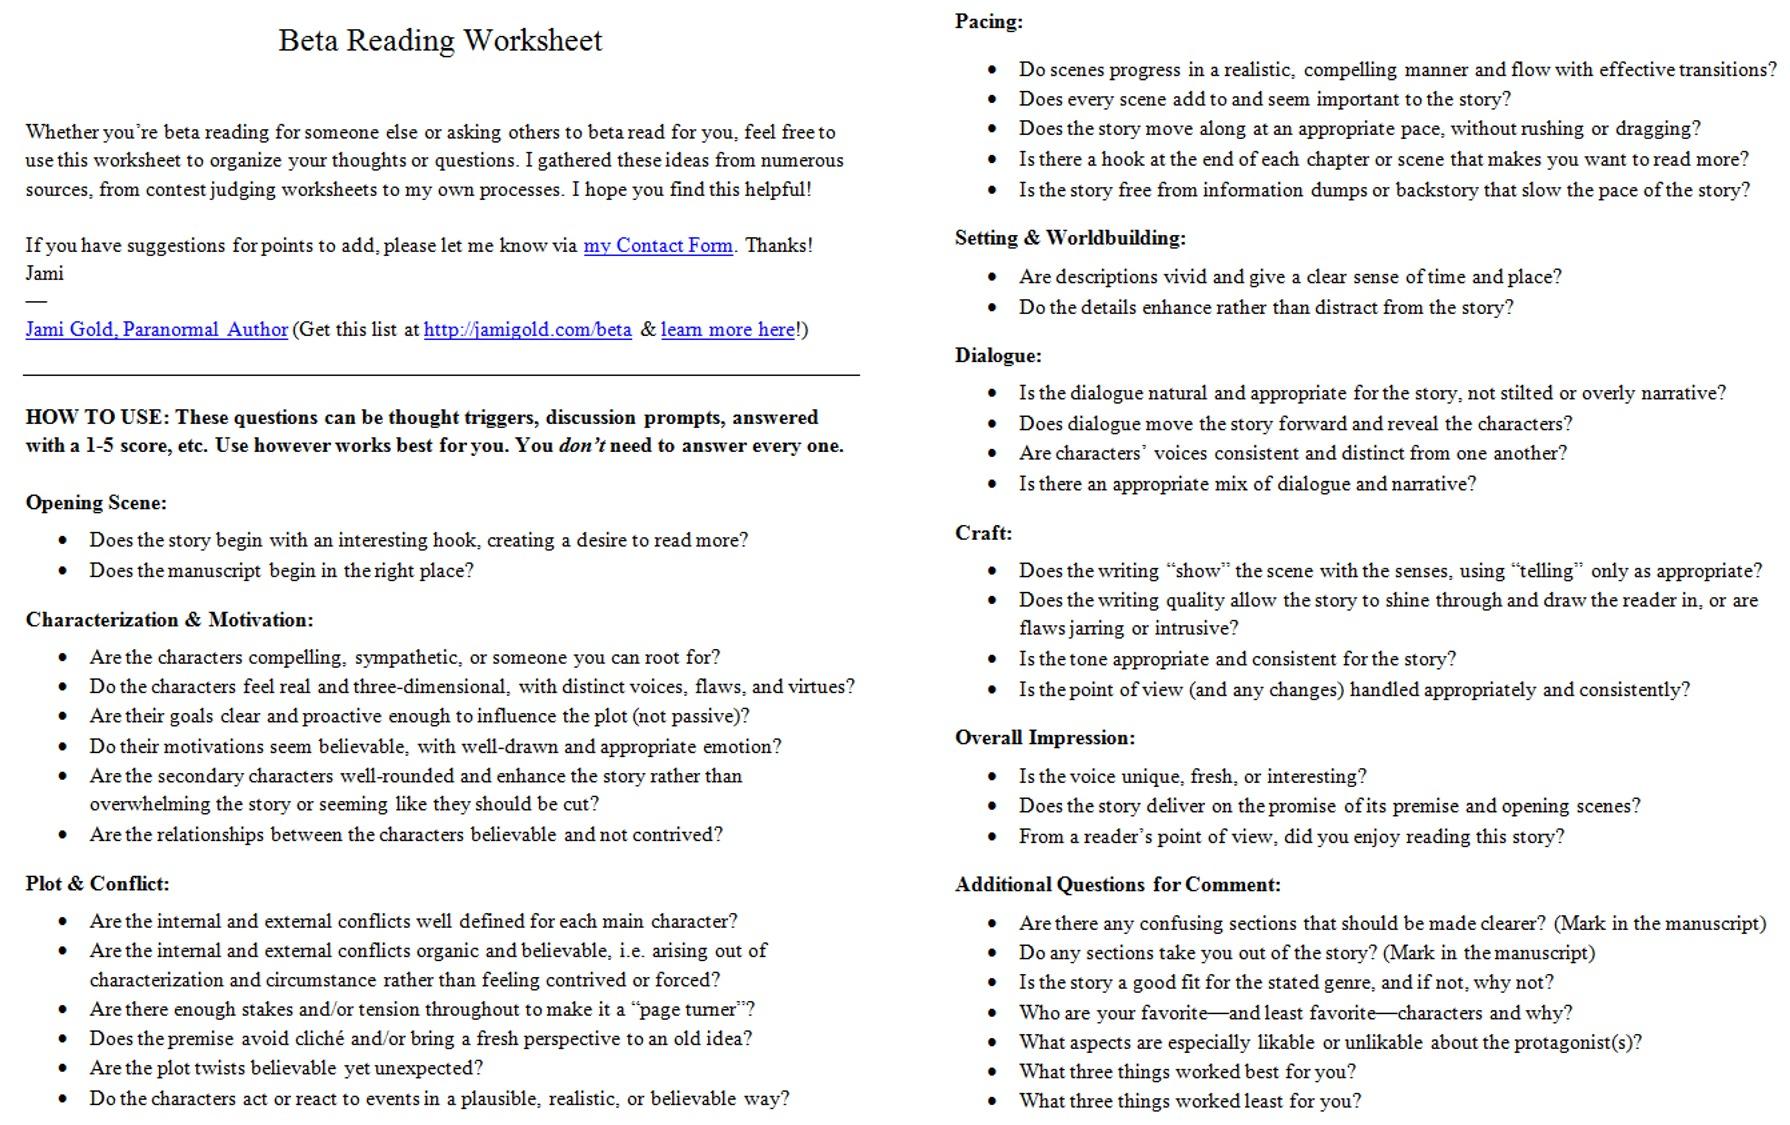 Aldiablosus  Marvelous Worksheets For Writers  Jami Gold Paranormal Author With Exciting Screen Shot Of The Twopage Beta Reading Worksheet With Divine Free Comprehension Worksheets Also Balancing Nuclear Equations Worksheet In Addition Math Facts Worksheet And World Map Worksheet As Well As Matrix Multiplication Worksheet Additionally Determining Empirical Formulas Worksheet From Jamigoldcom With Aldiablosus  Exciting Worksheets For Writers  Jami Gold Paranormal Author With Divine Screen Shot Of The Twopage Beta Reading Worksheet And Marvelous Free Comprehension Worksheets Also Balancing Nuclear Equations Worksheet In Addition Math Facts Worksheet From Jamigoldcom